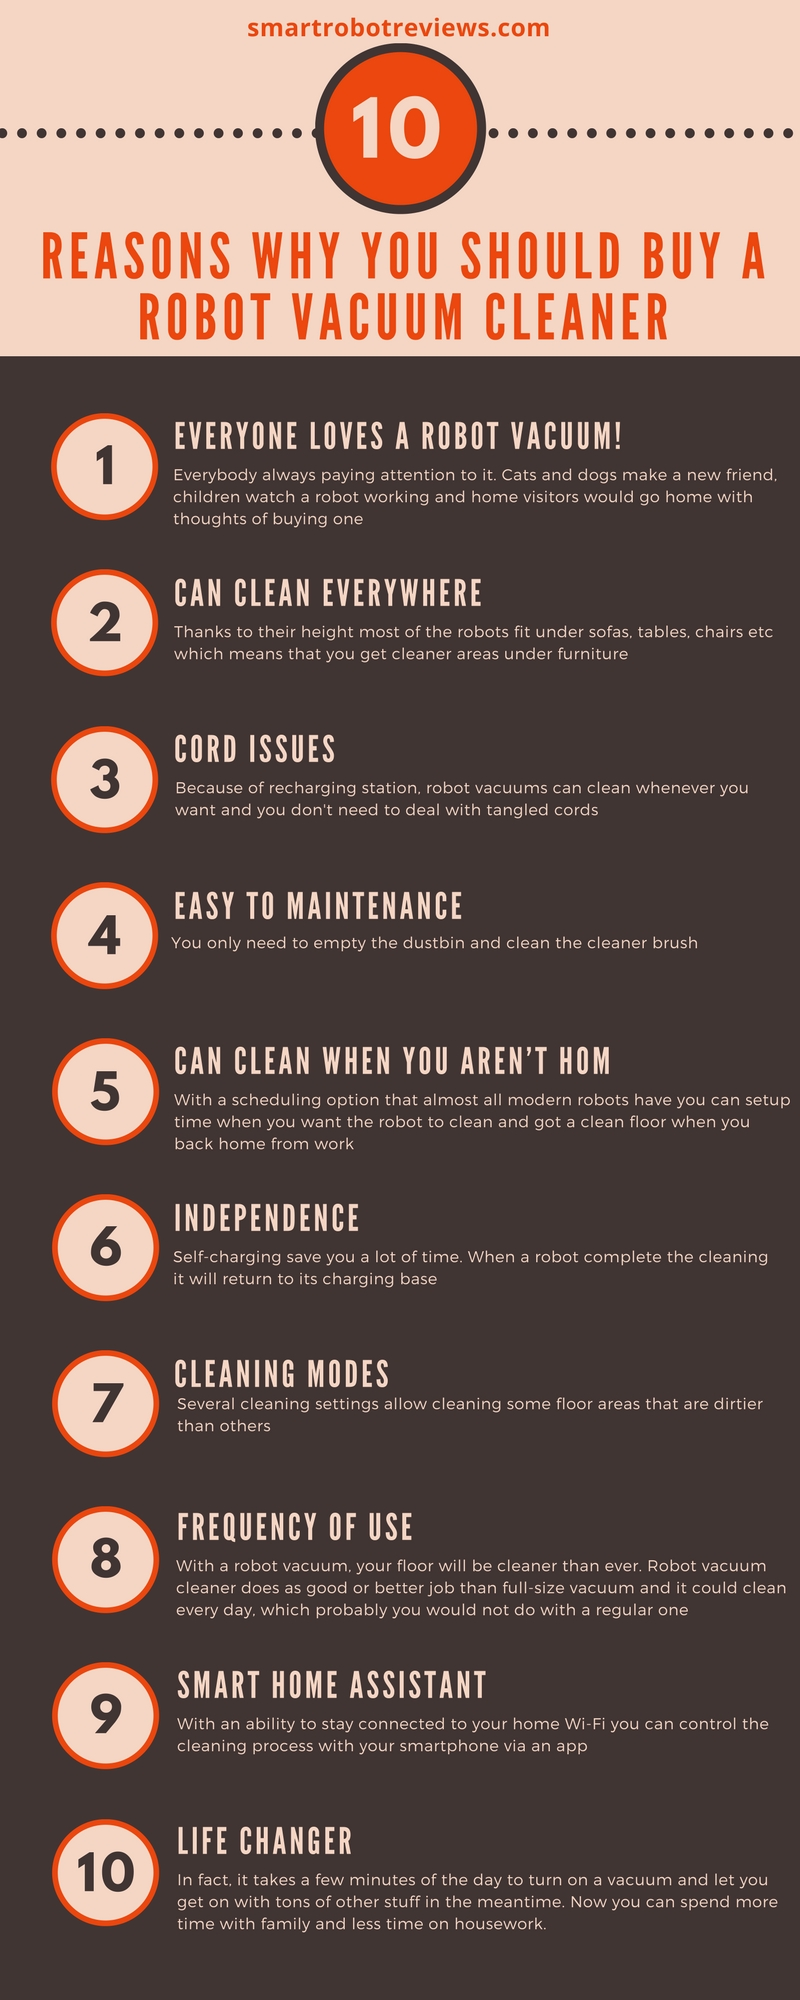 10 reasons why you should buy a robot vacuum cleaner Infographic via smartrobotreviews